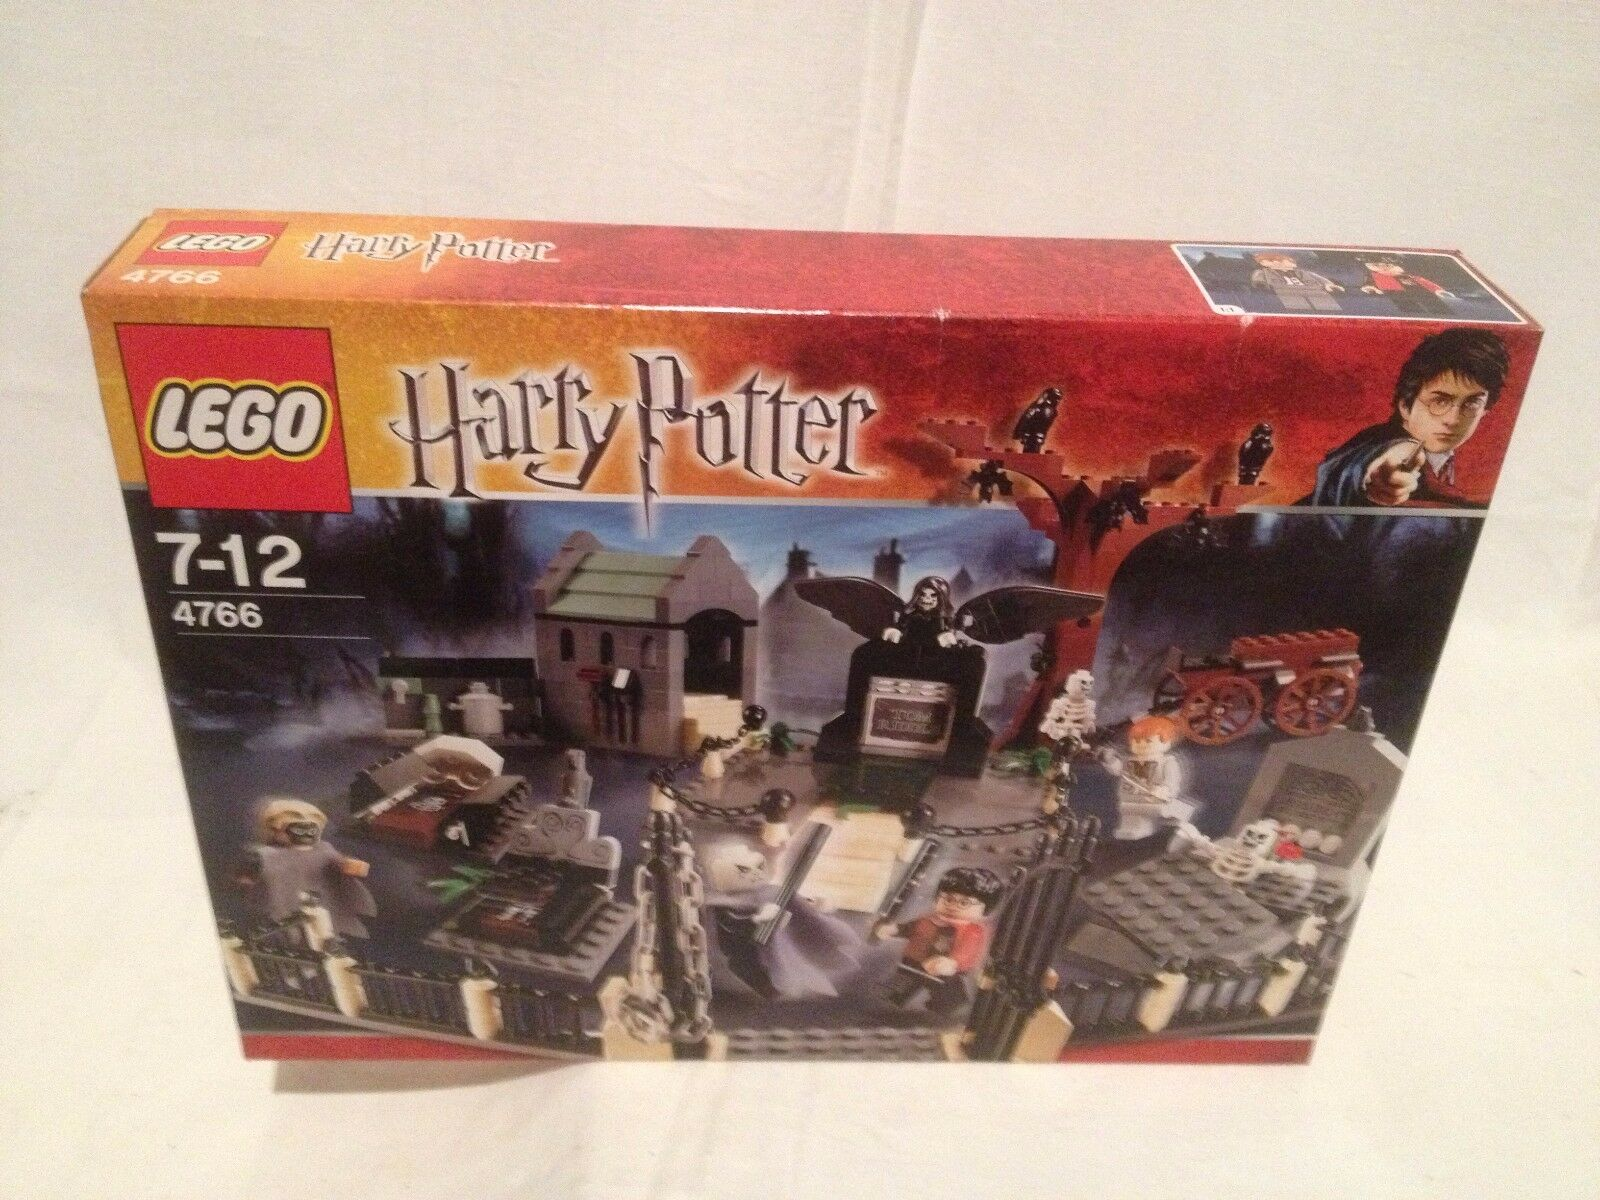 Lego Harry Potter 4766 Graveyard Duel NEUF 1 édition